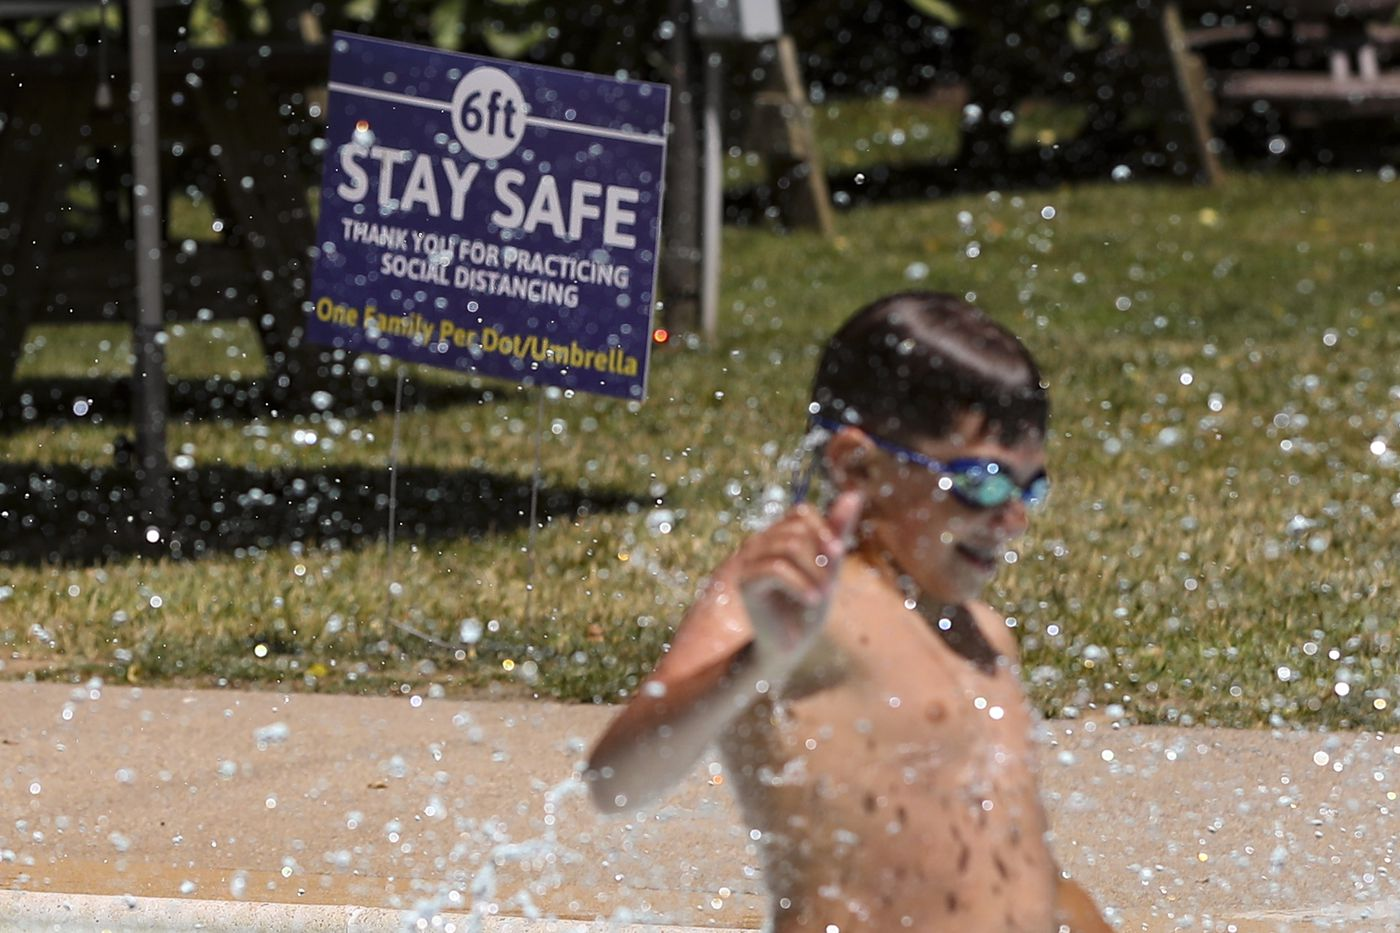 Delaware County's Swim Clubs Are Open If You'd Like to Reclaim Some of Your Summer